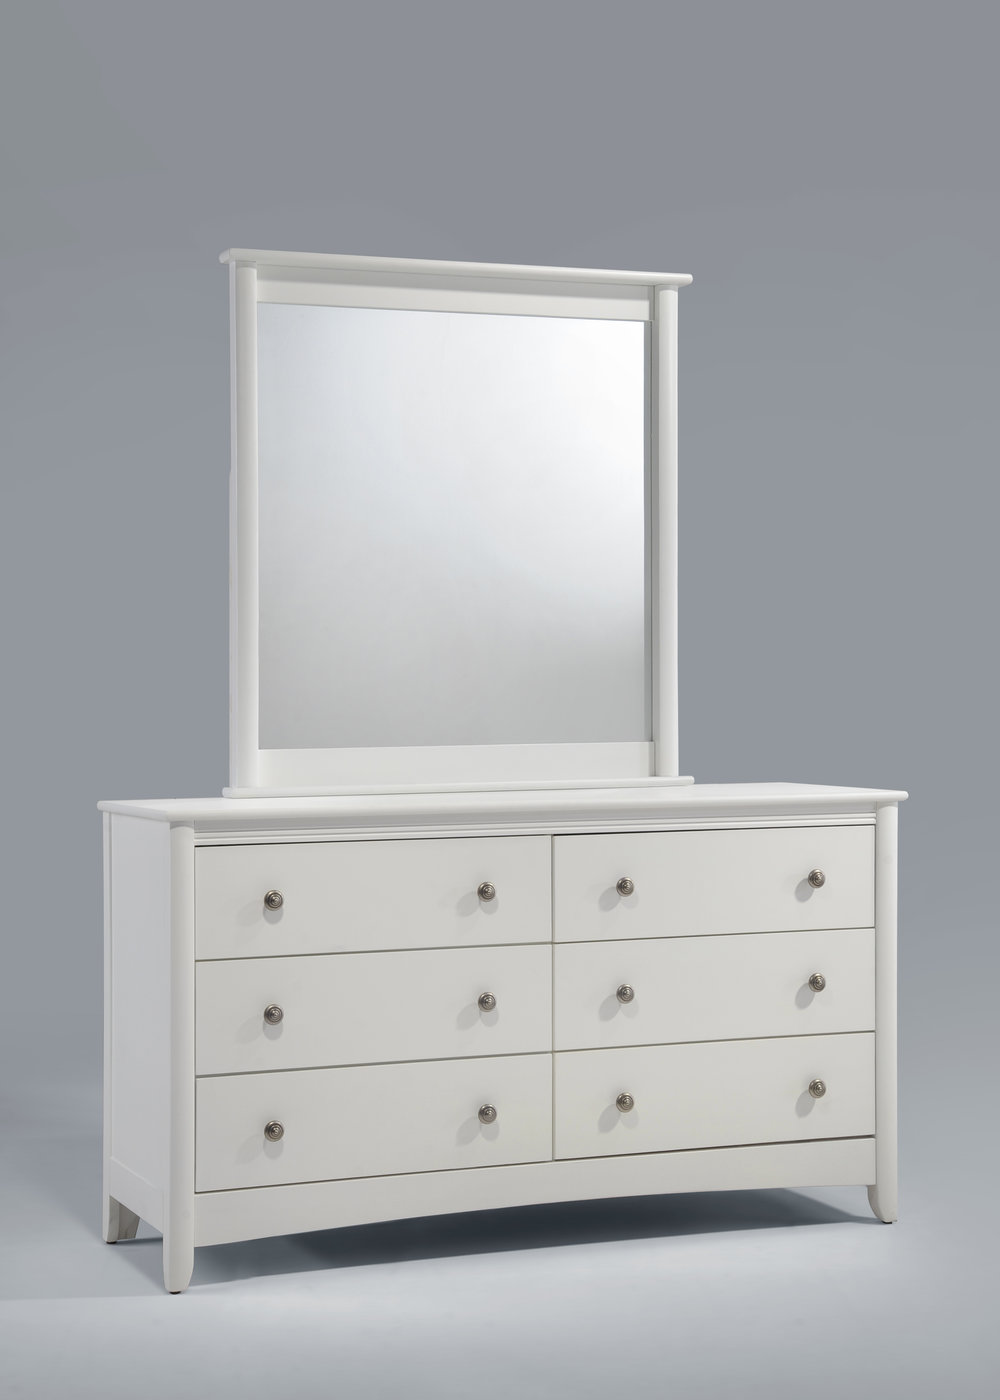 Secrets 6 Drawer Dresser & Mirror White.jpg